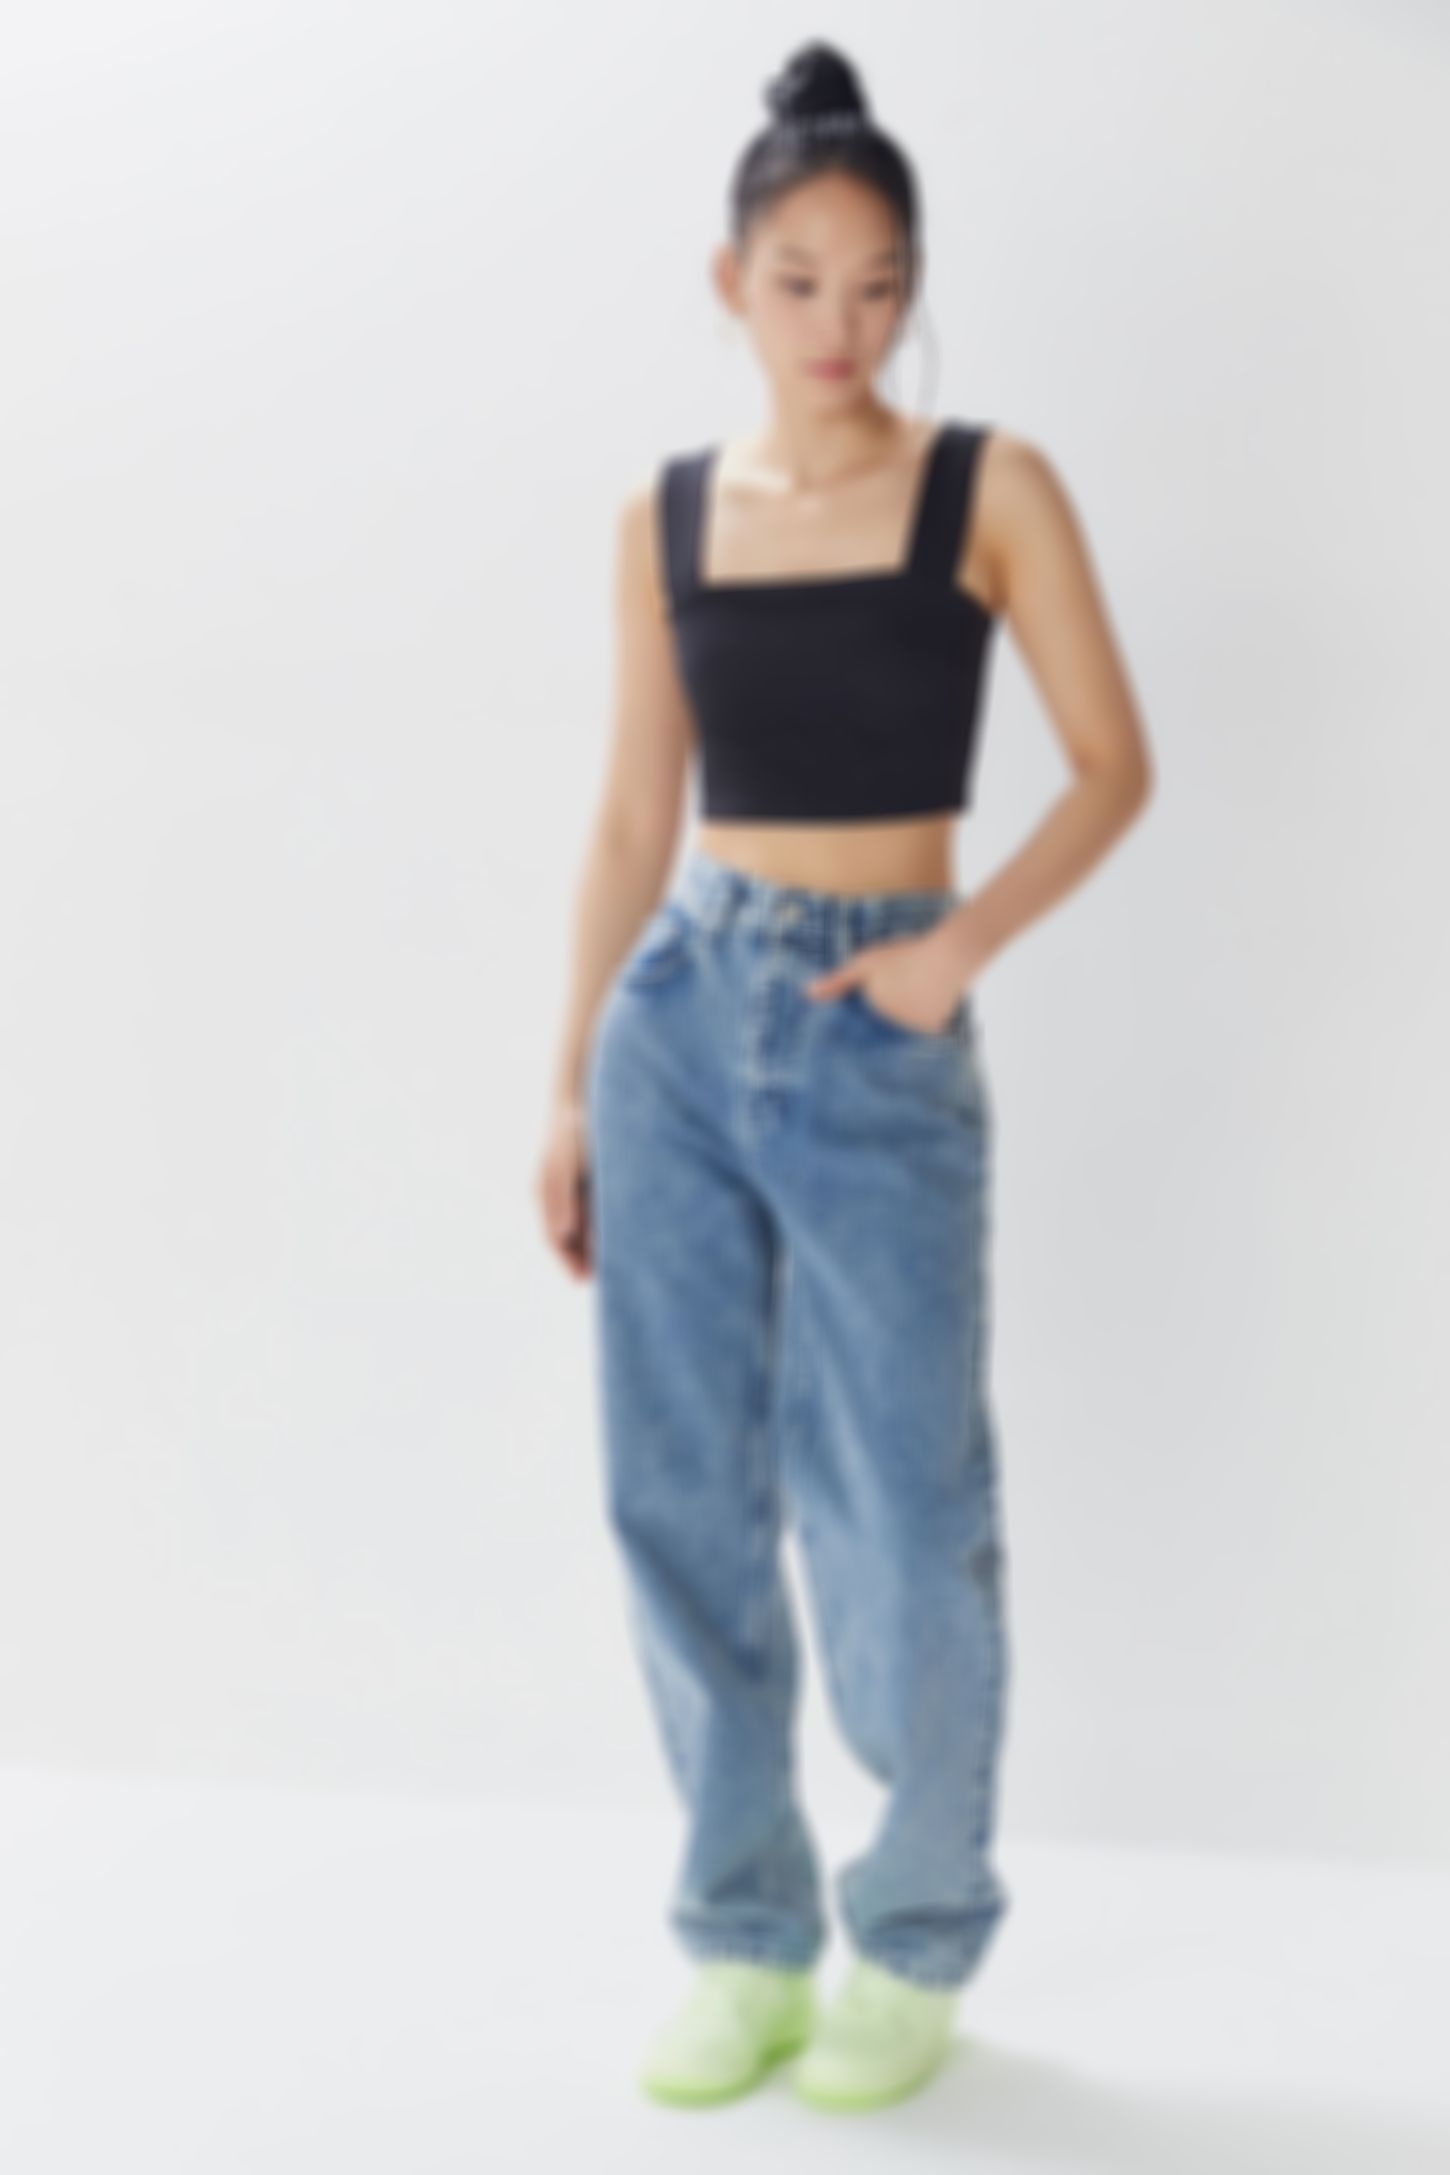 Jeans For Women Size 30 Jeans Flared Leather Trousers 60S Style Dresses Casual Wear For Pageant 2019